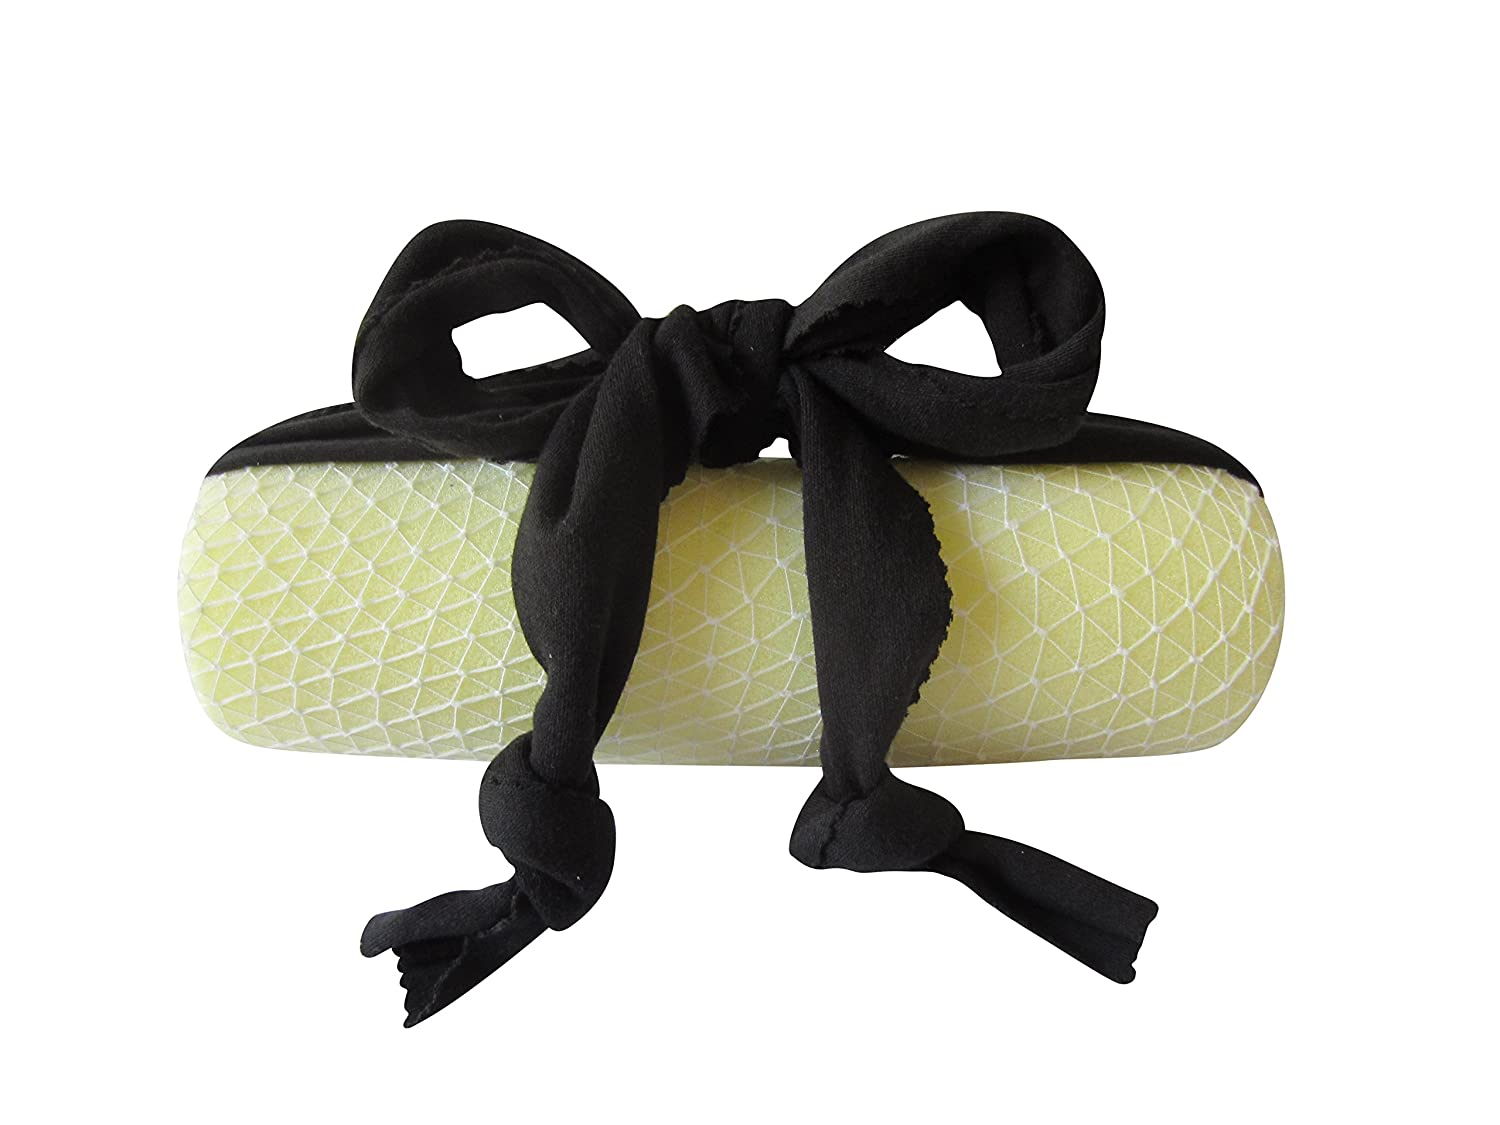 Hair Salon Neck Support Pillow for Shampoo Bowl with Organic Bamboo French Terry RSC